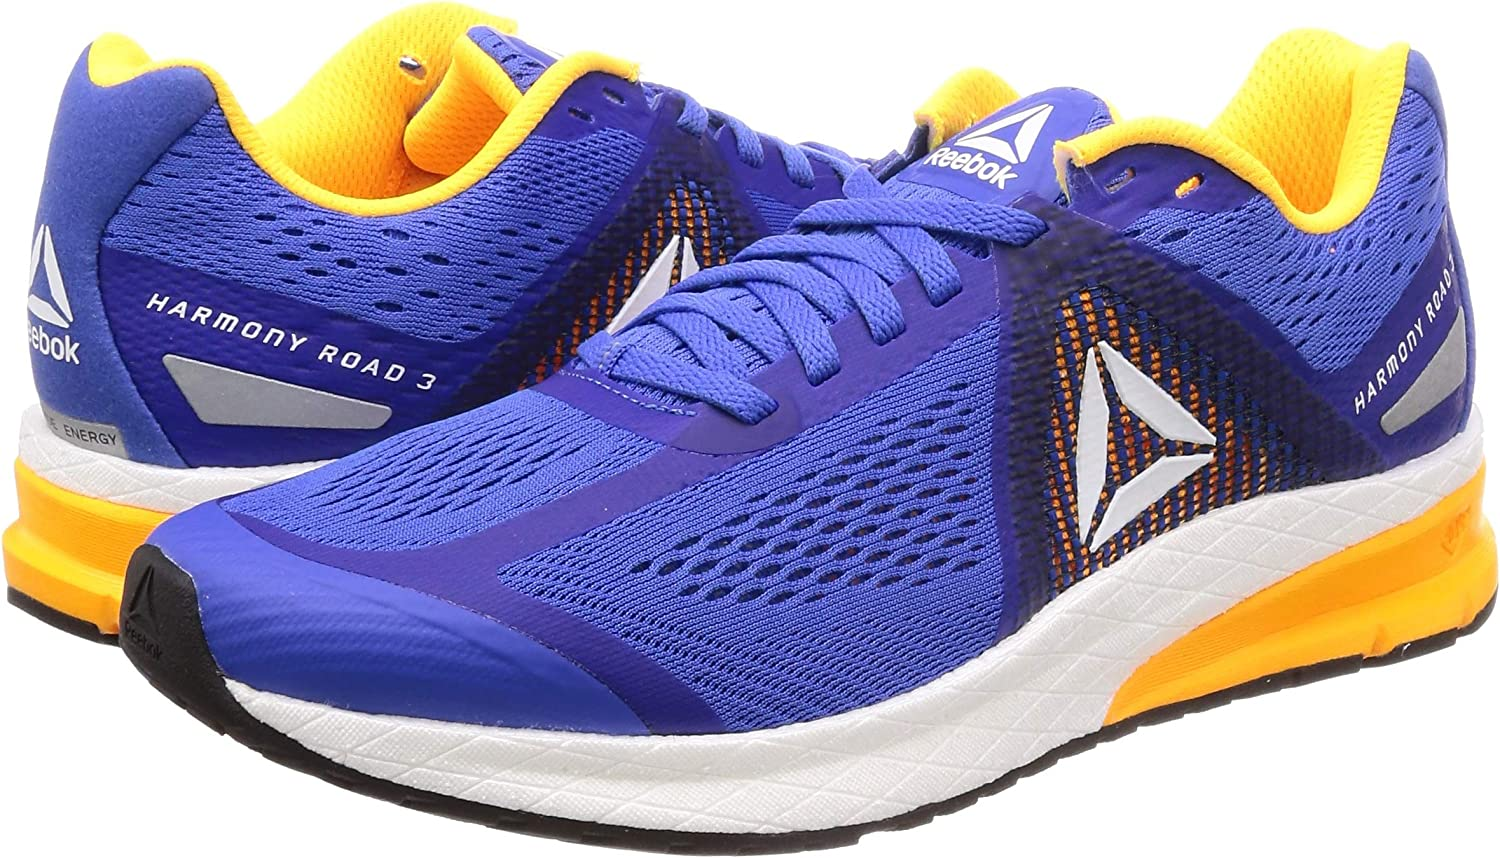 Reebok Harmony Road 3, Chaussures de Running Compétition Homme